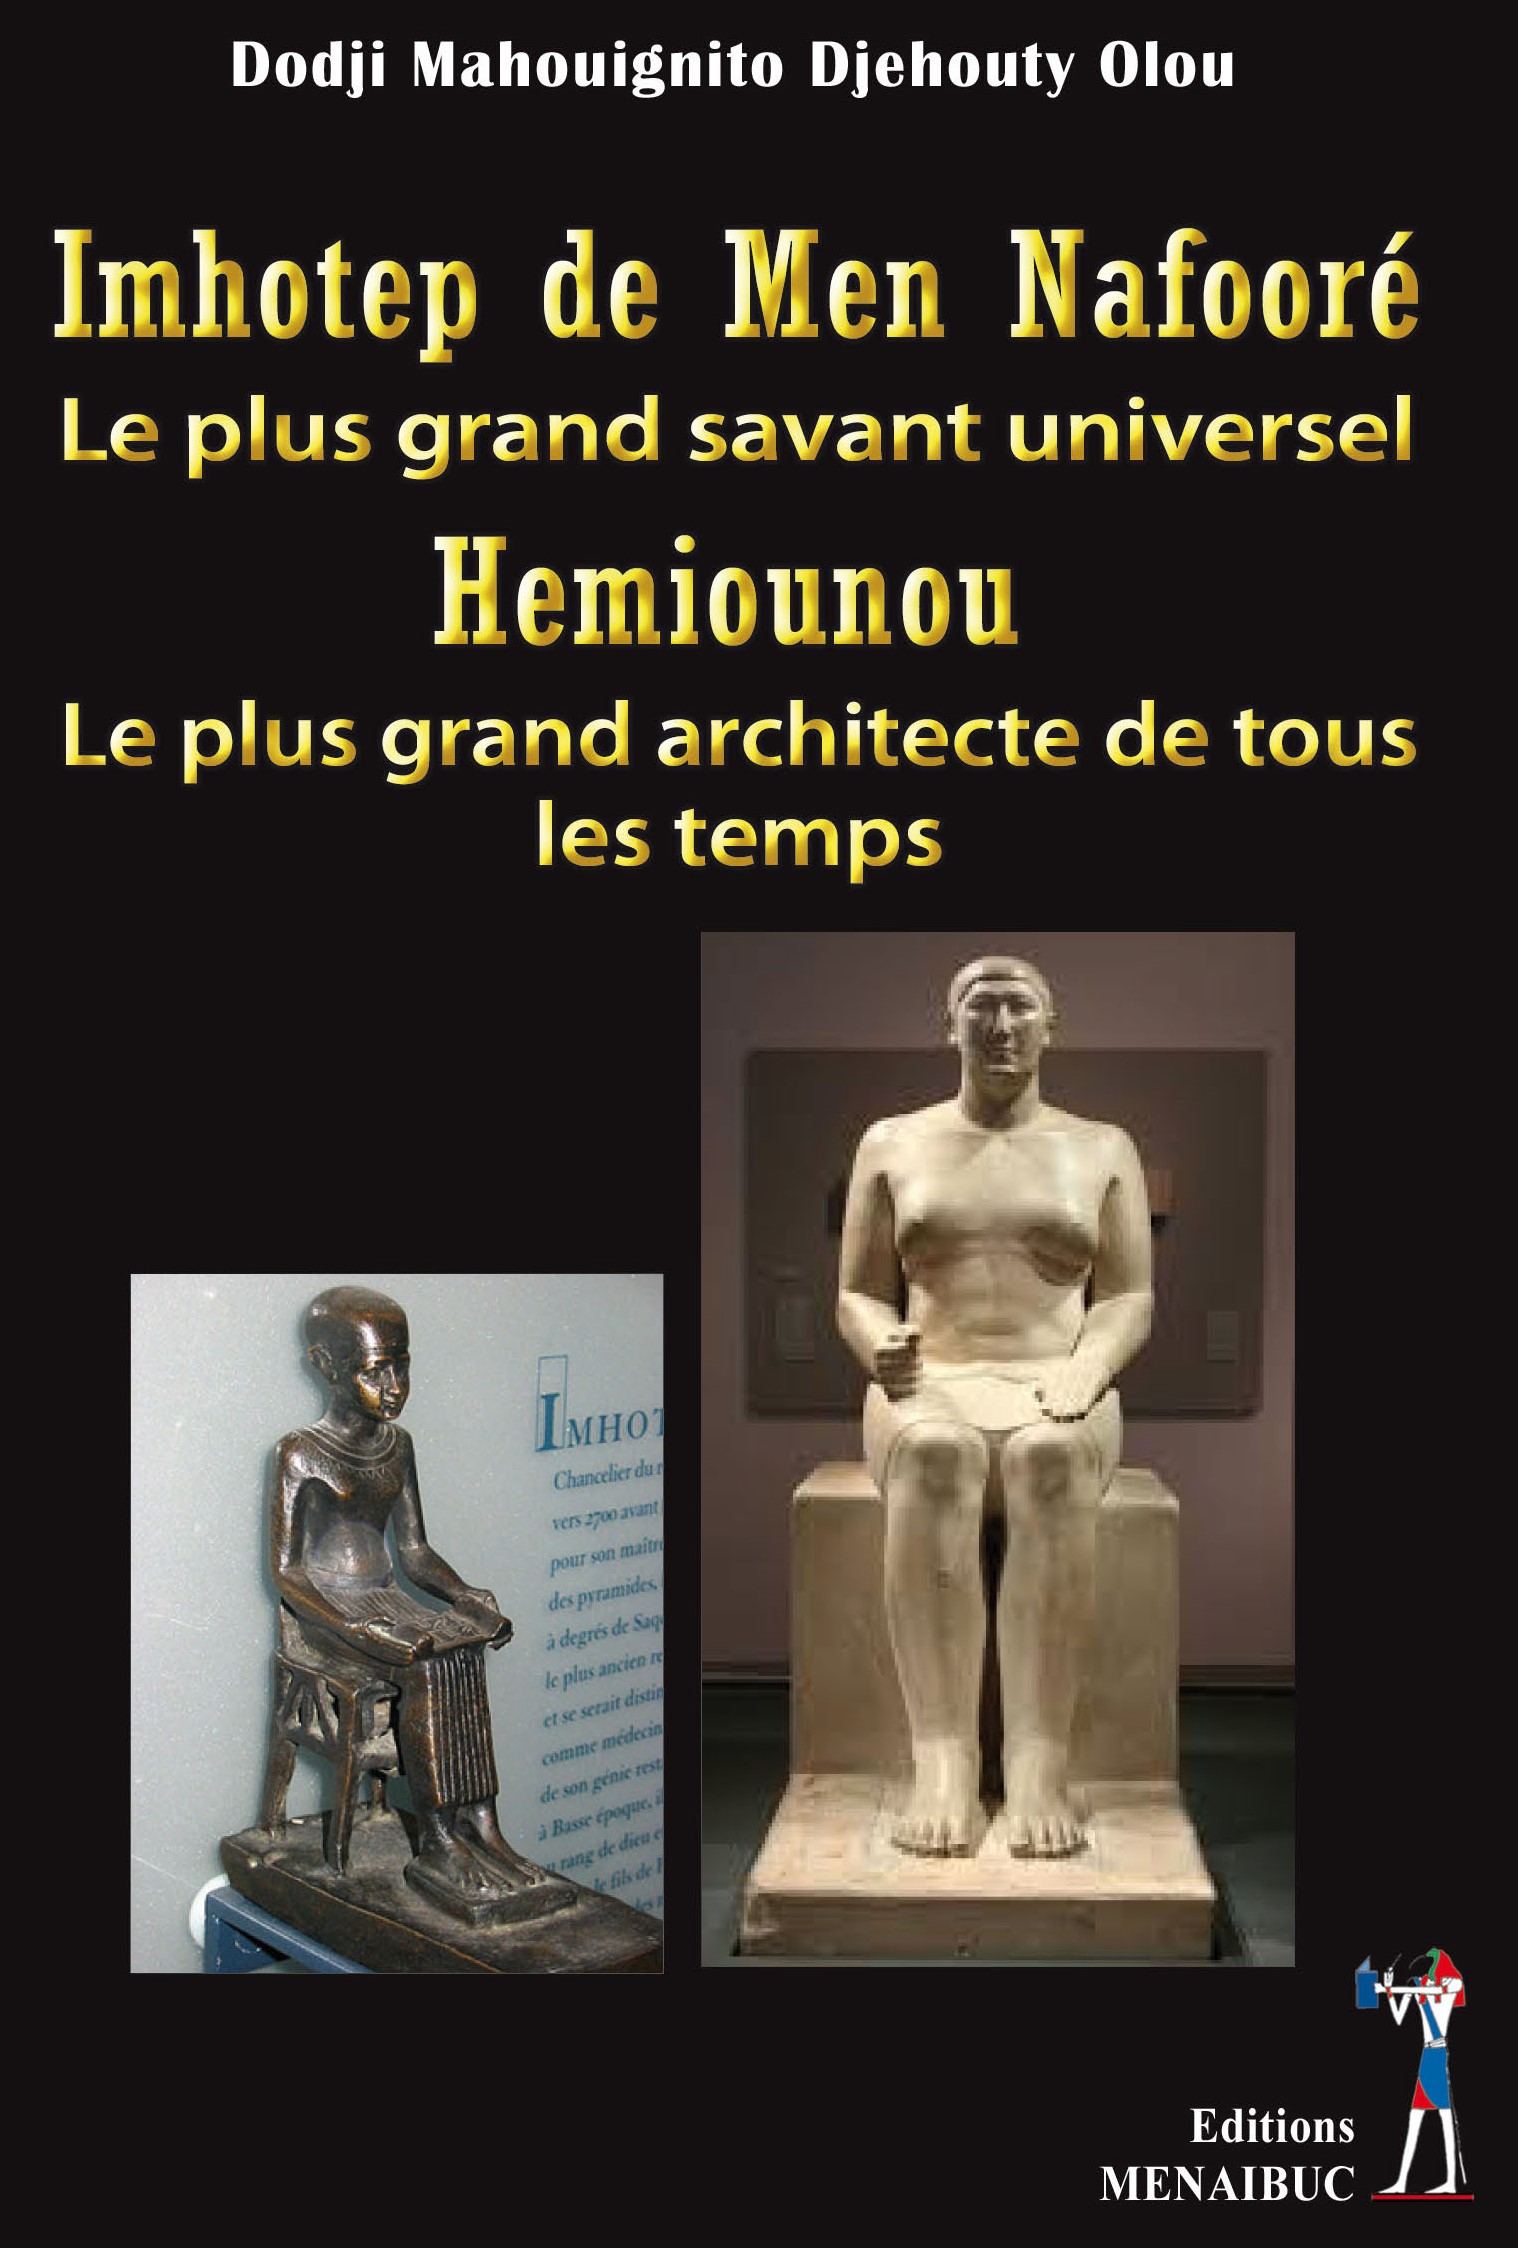 Imhotep de Men Nafooré,  le plus grand savant universel.  Hemiounou,  le plus grand architecte  de tous les temps.